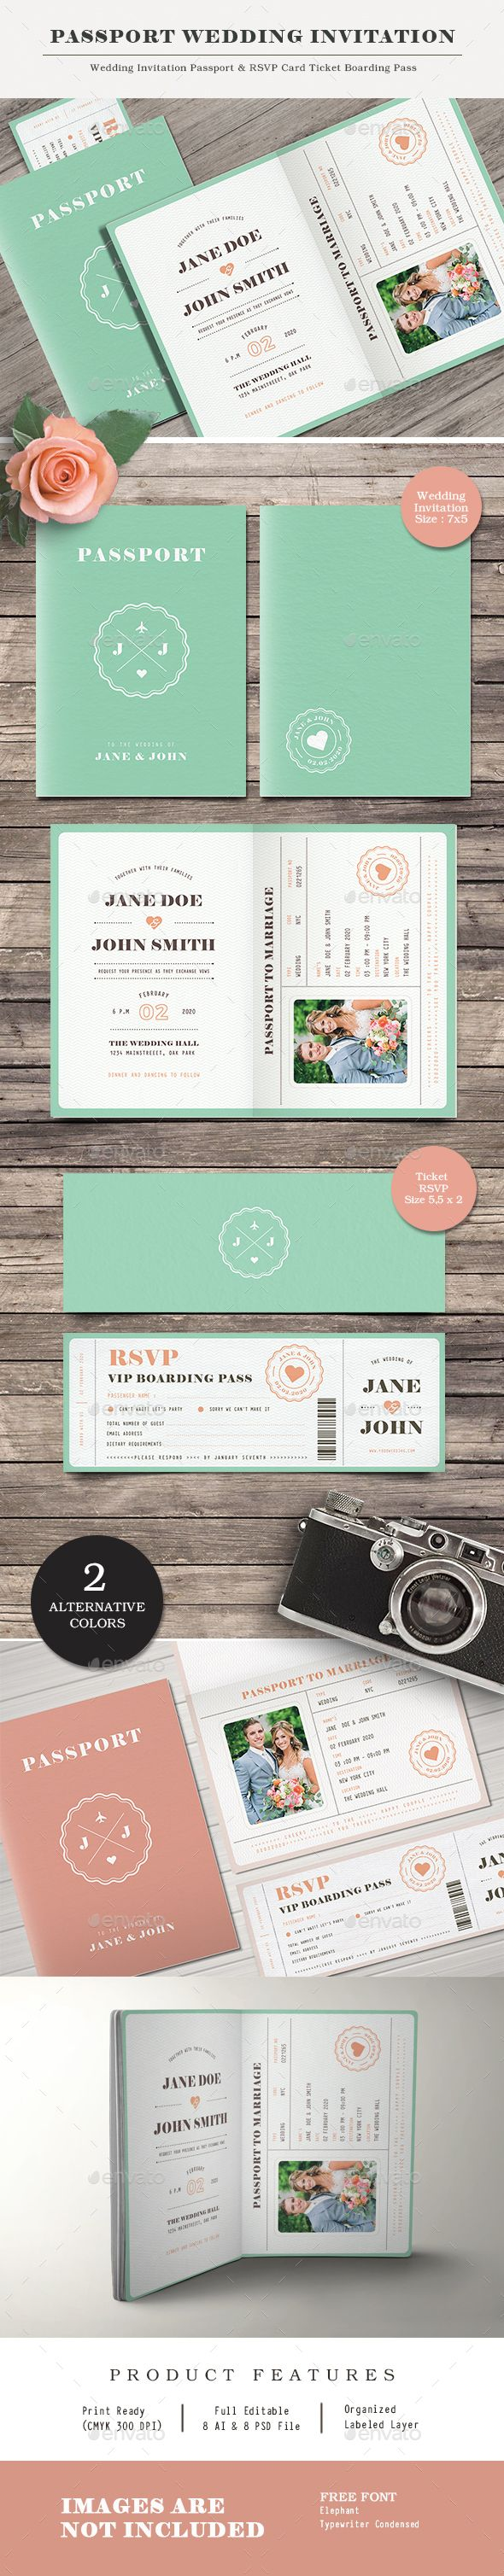 free wedding invitation psd%0A Passport Wedding Invitation